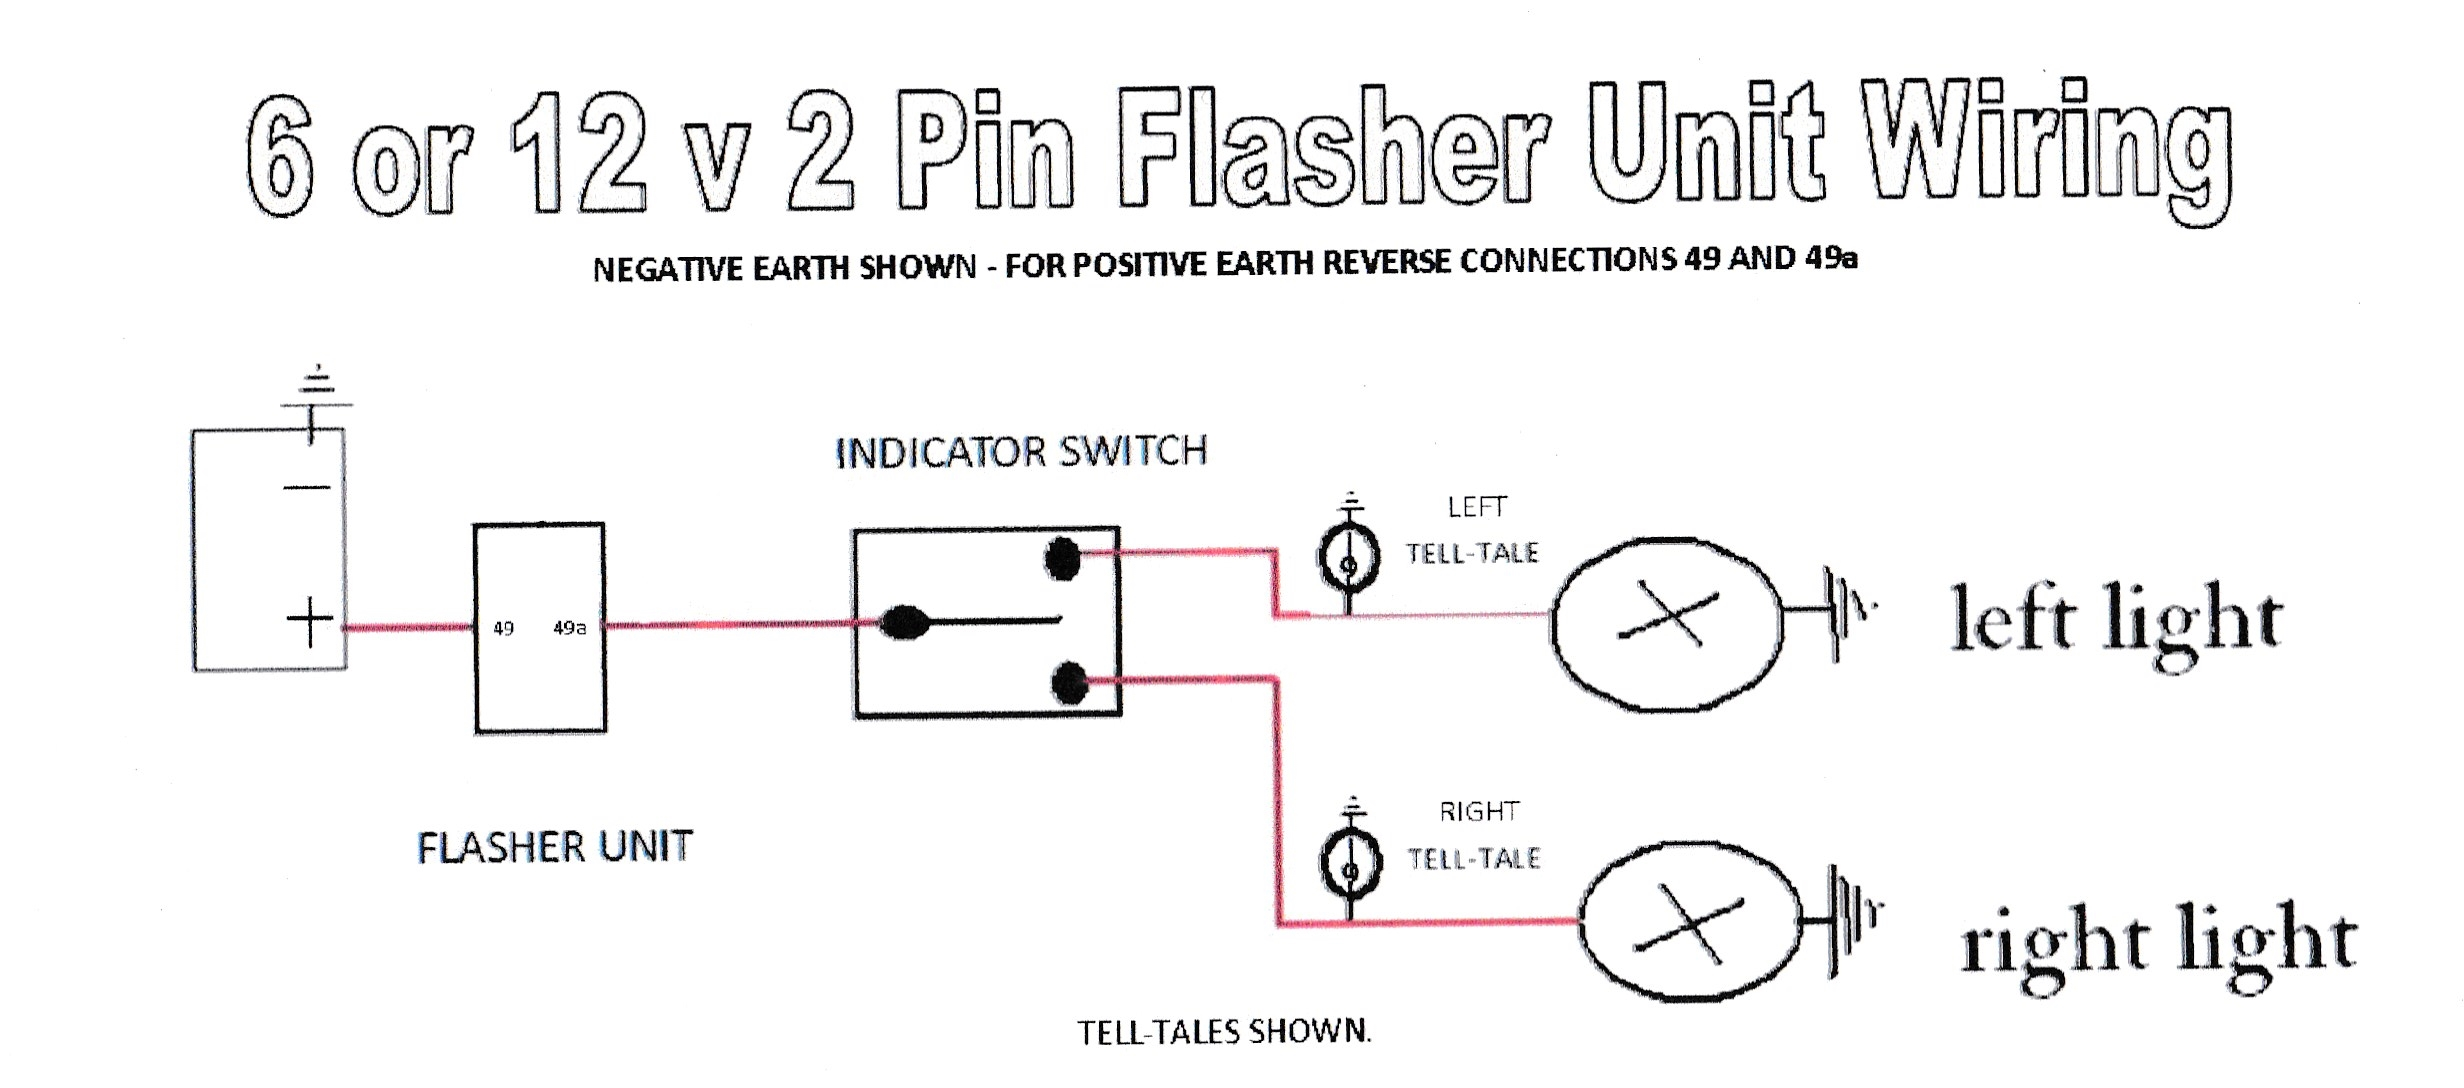 2 pin flasher relay wiring diagram diagram base website wiring diagram -  matplotlibvenndiagram.sabinideltevere.it  diagram base website full edition - sabinideltevere